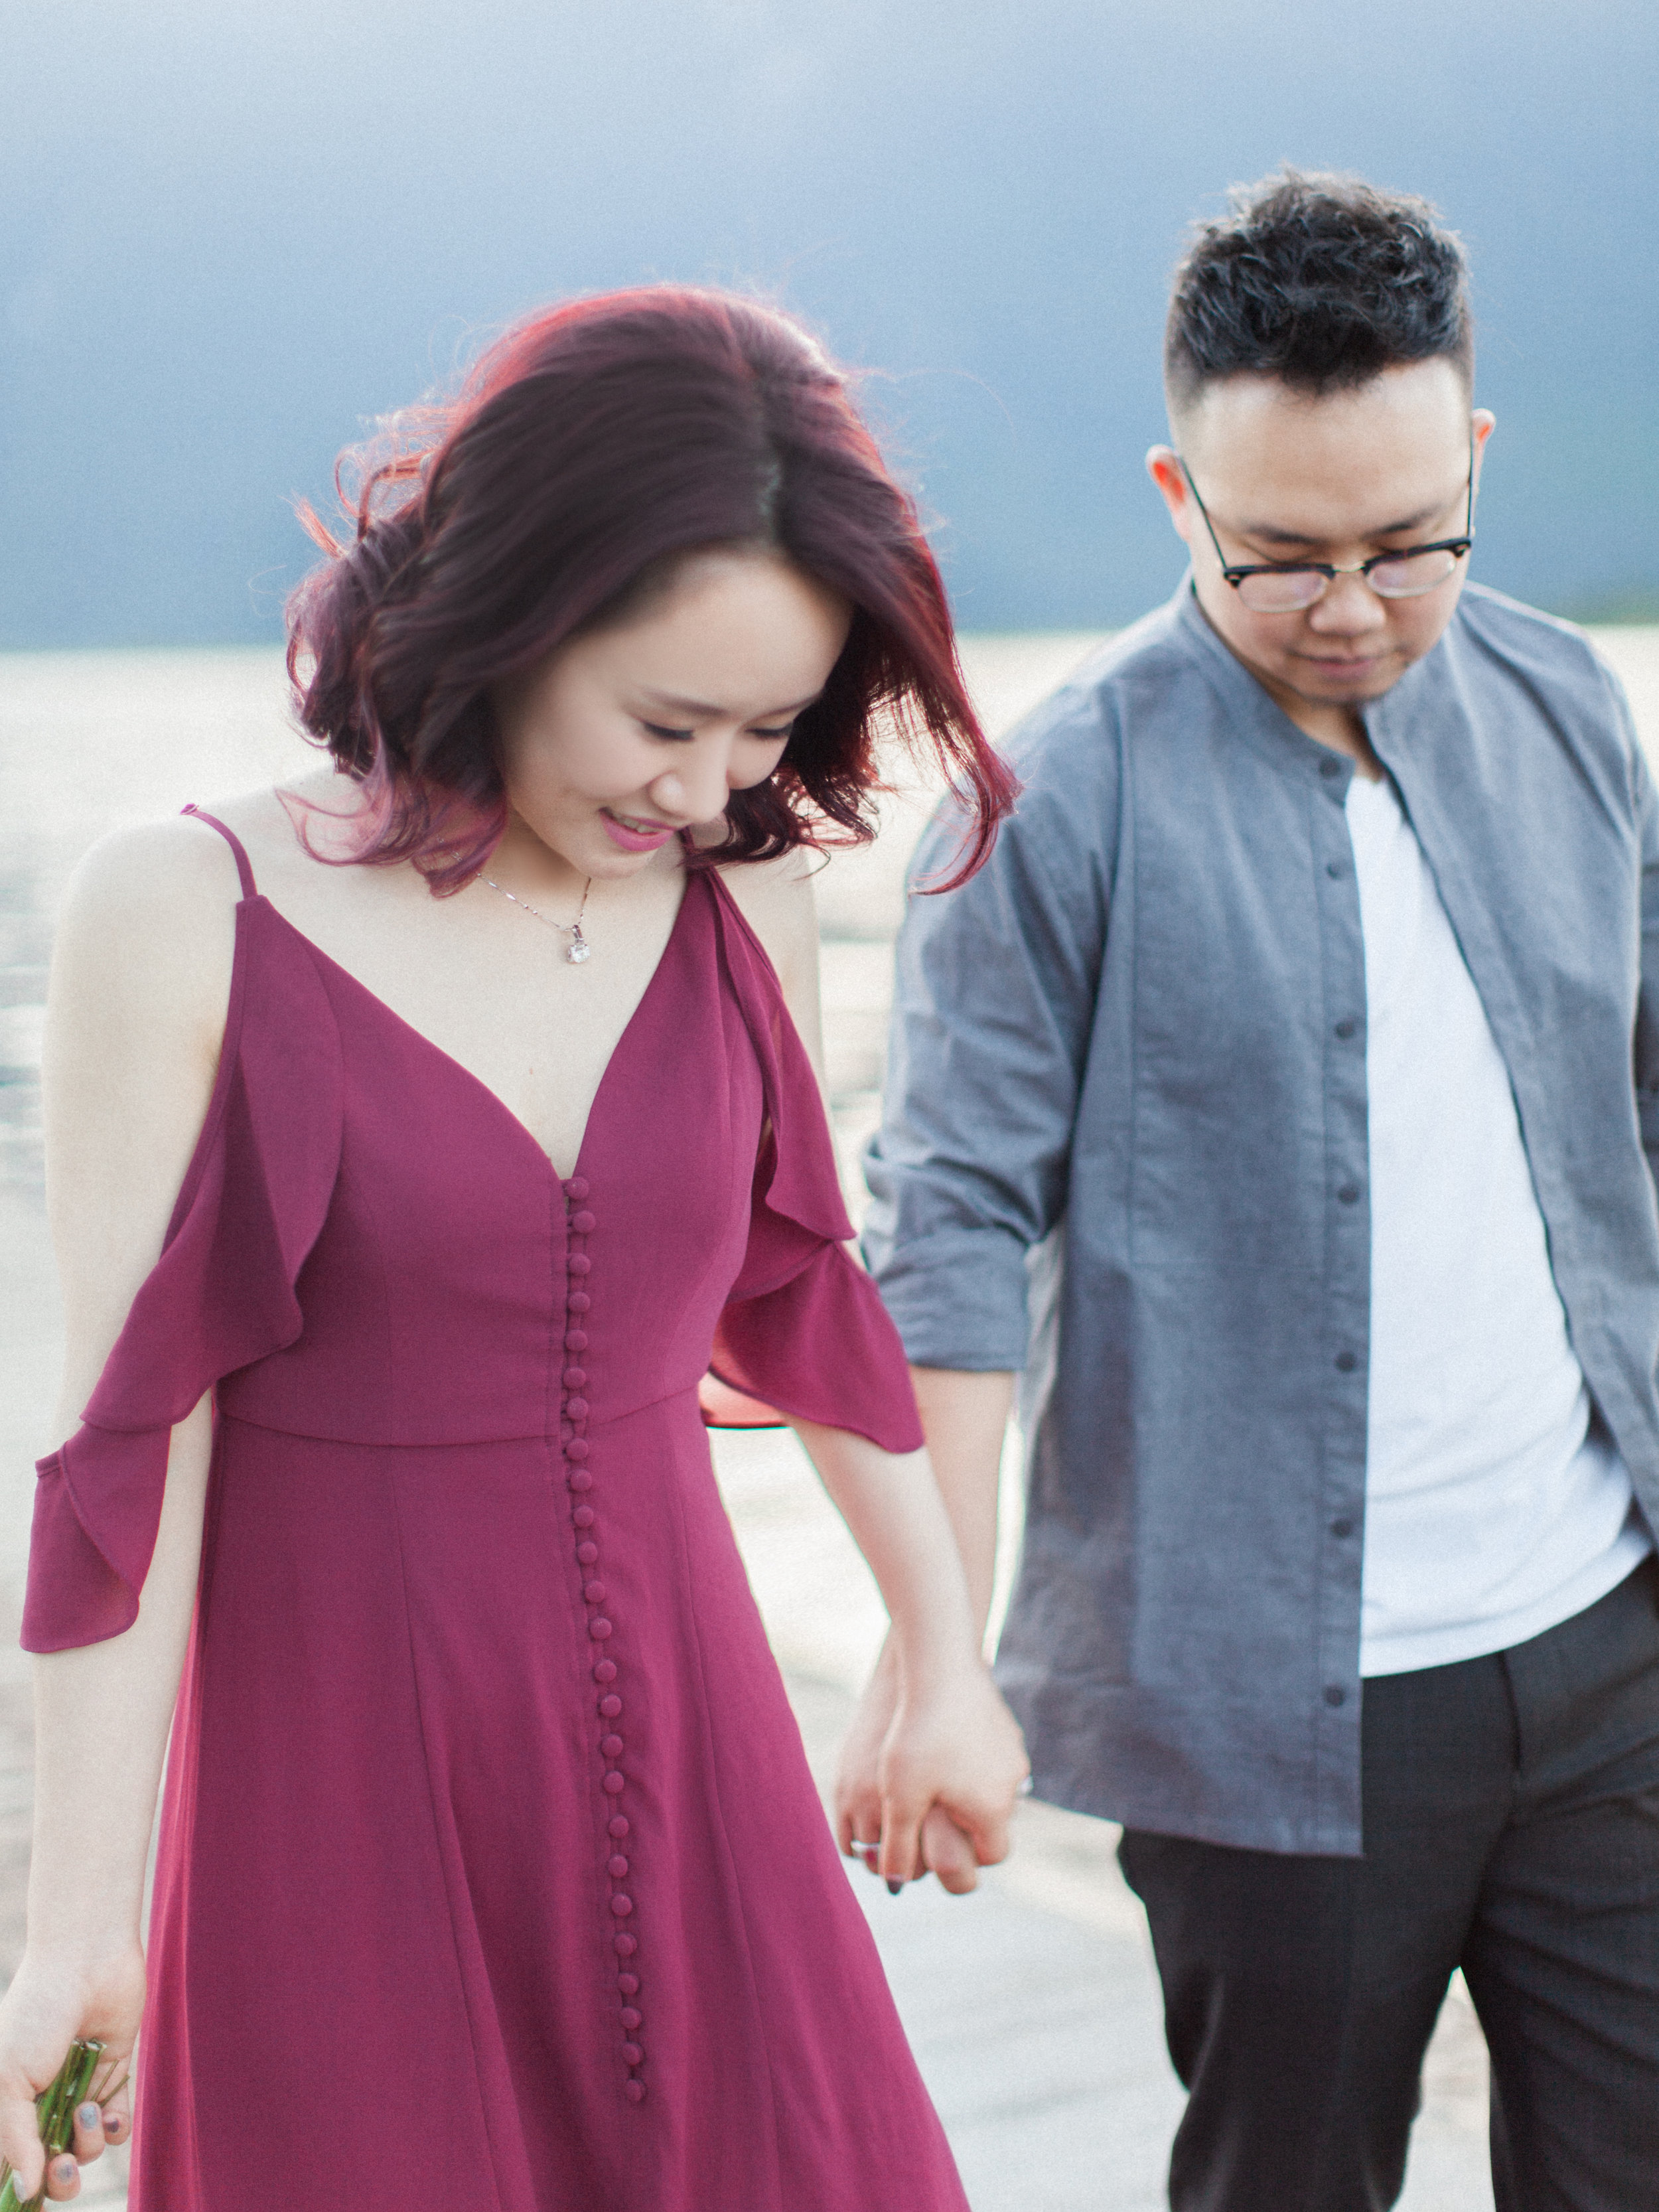 20170528Maple_Ridge_Engagement_Mary_Marco_Prewedding-26 copy.jpg